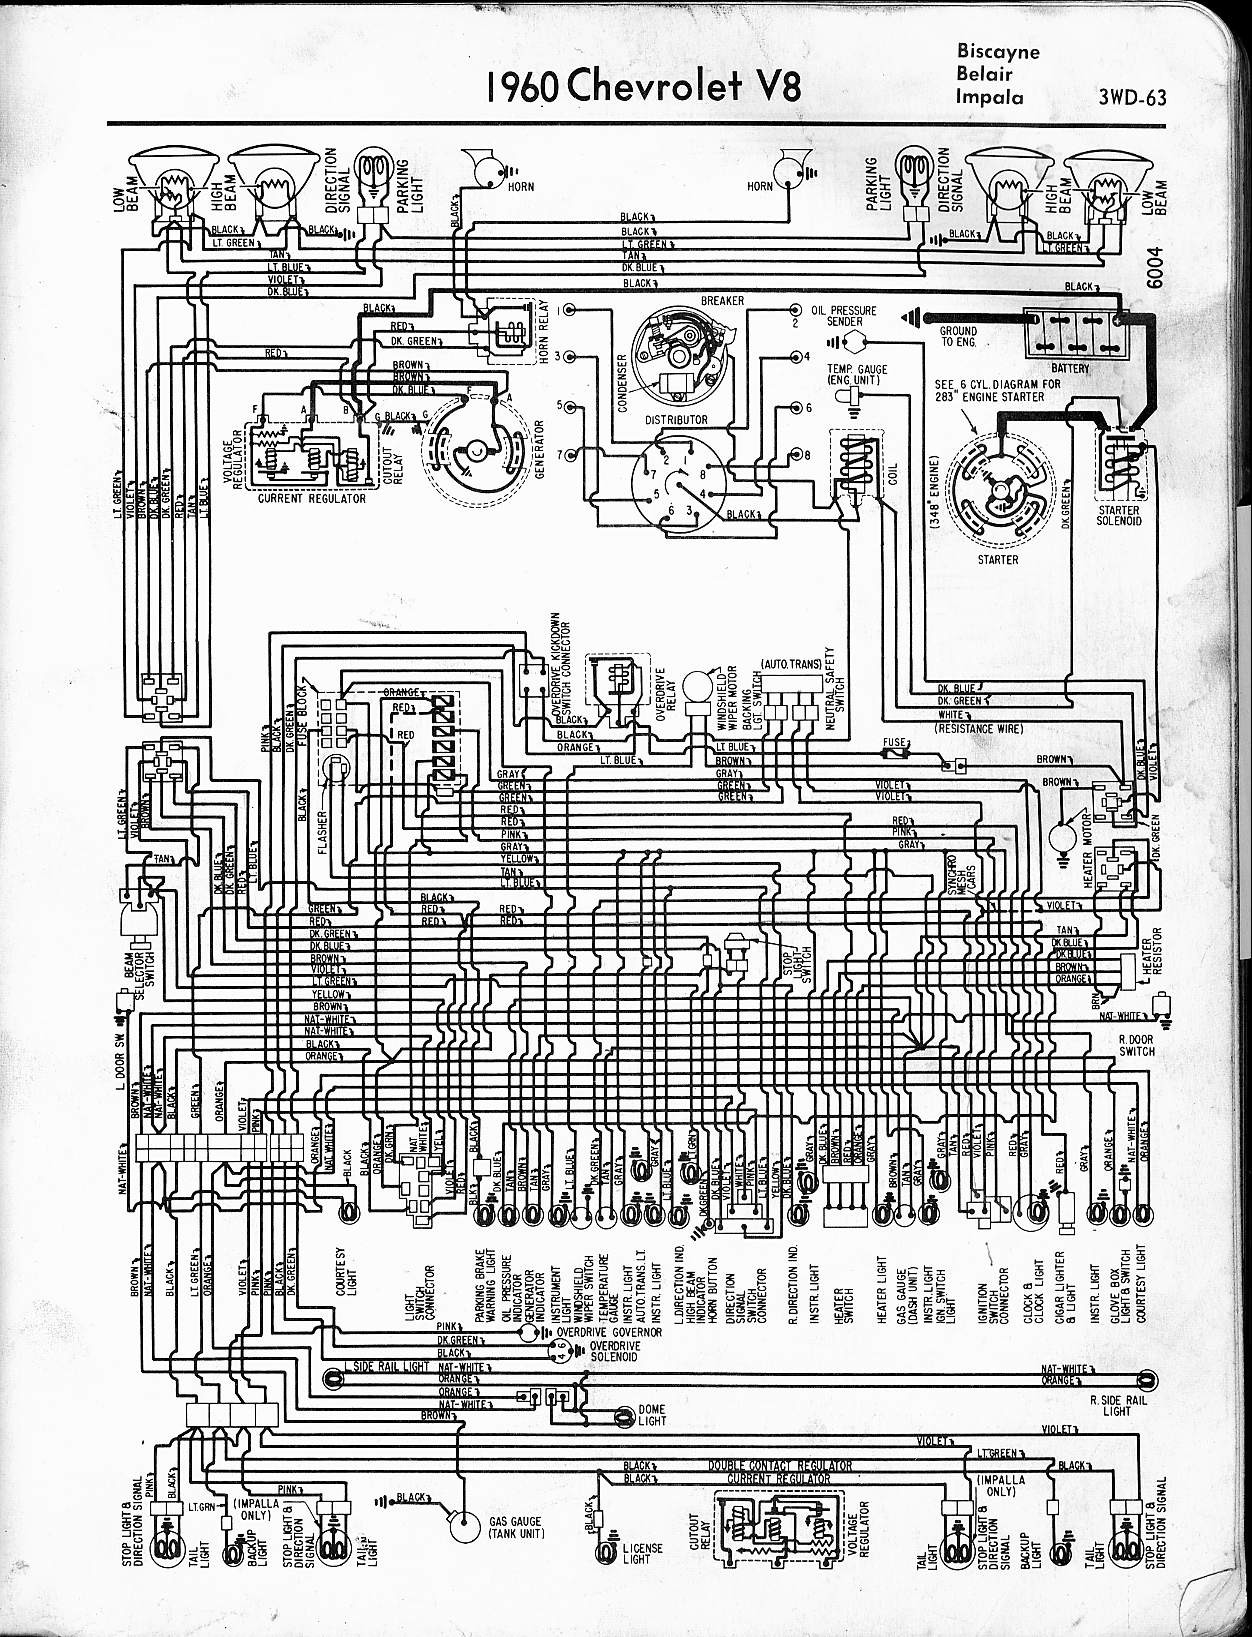 Chevy 3 1 Engine Diagram 57 65 Chevy Wiring Diagrams Of Chevy 3 1 Engine  Diagram